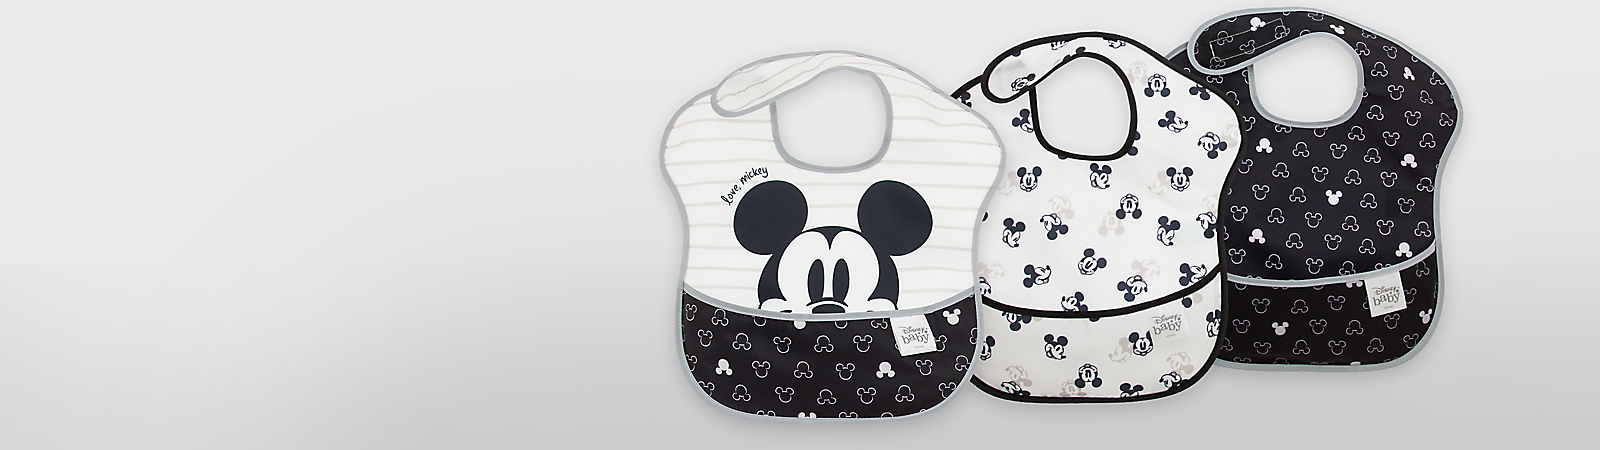 Background image of Baby Gear & Essentials